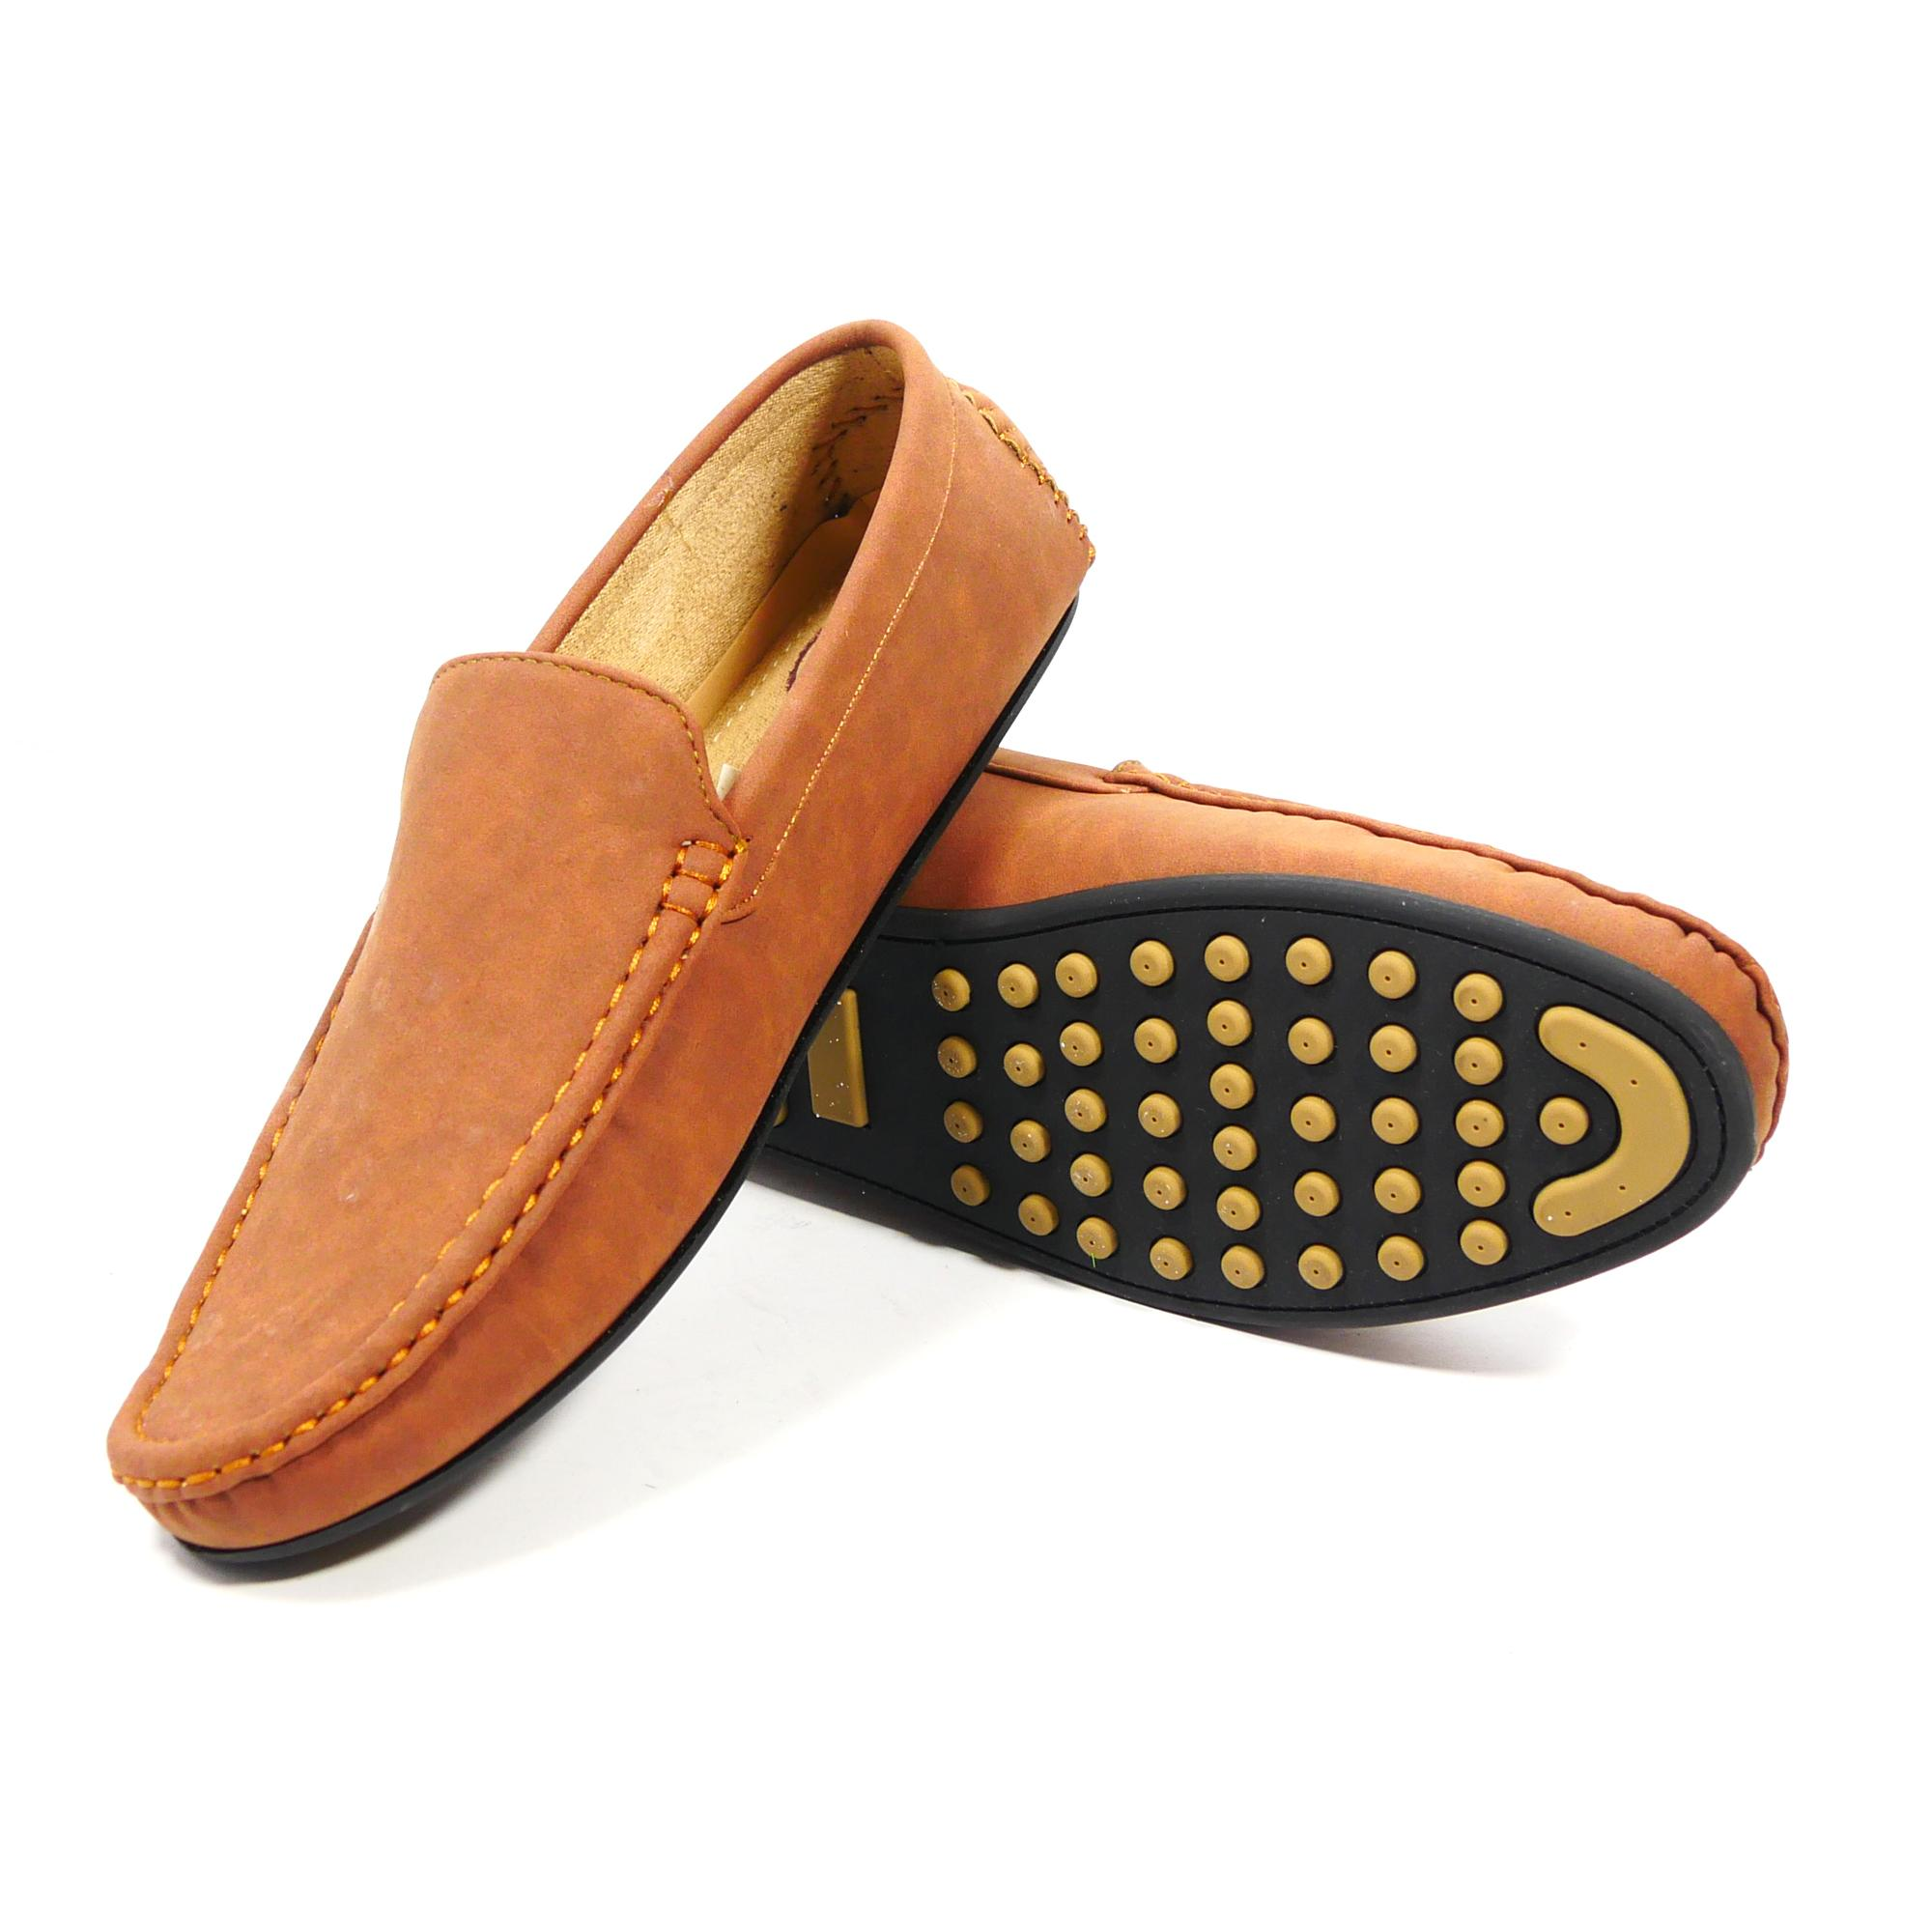 Shoes For Men Sale Mens Fashion Online Brands Prices Hummer Neopo Original Suede Leather Slip On Loafers 2017 Vden